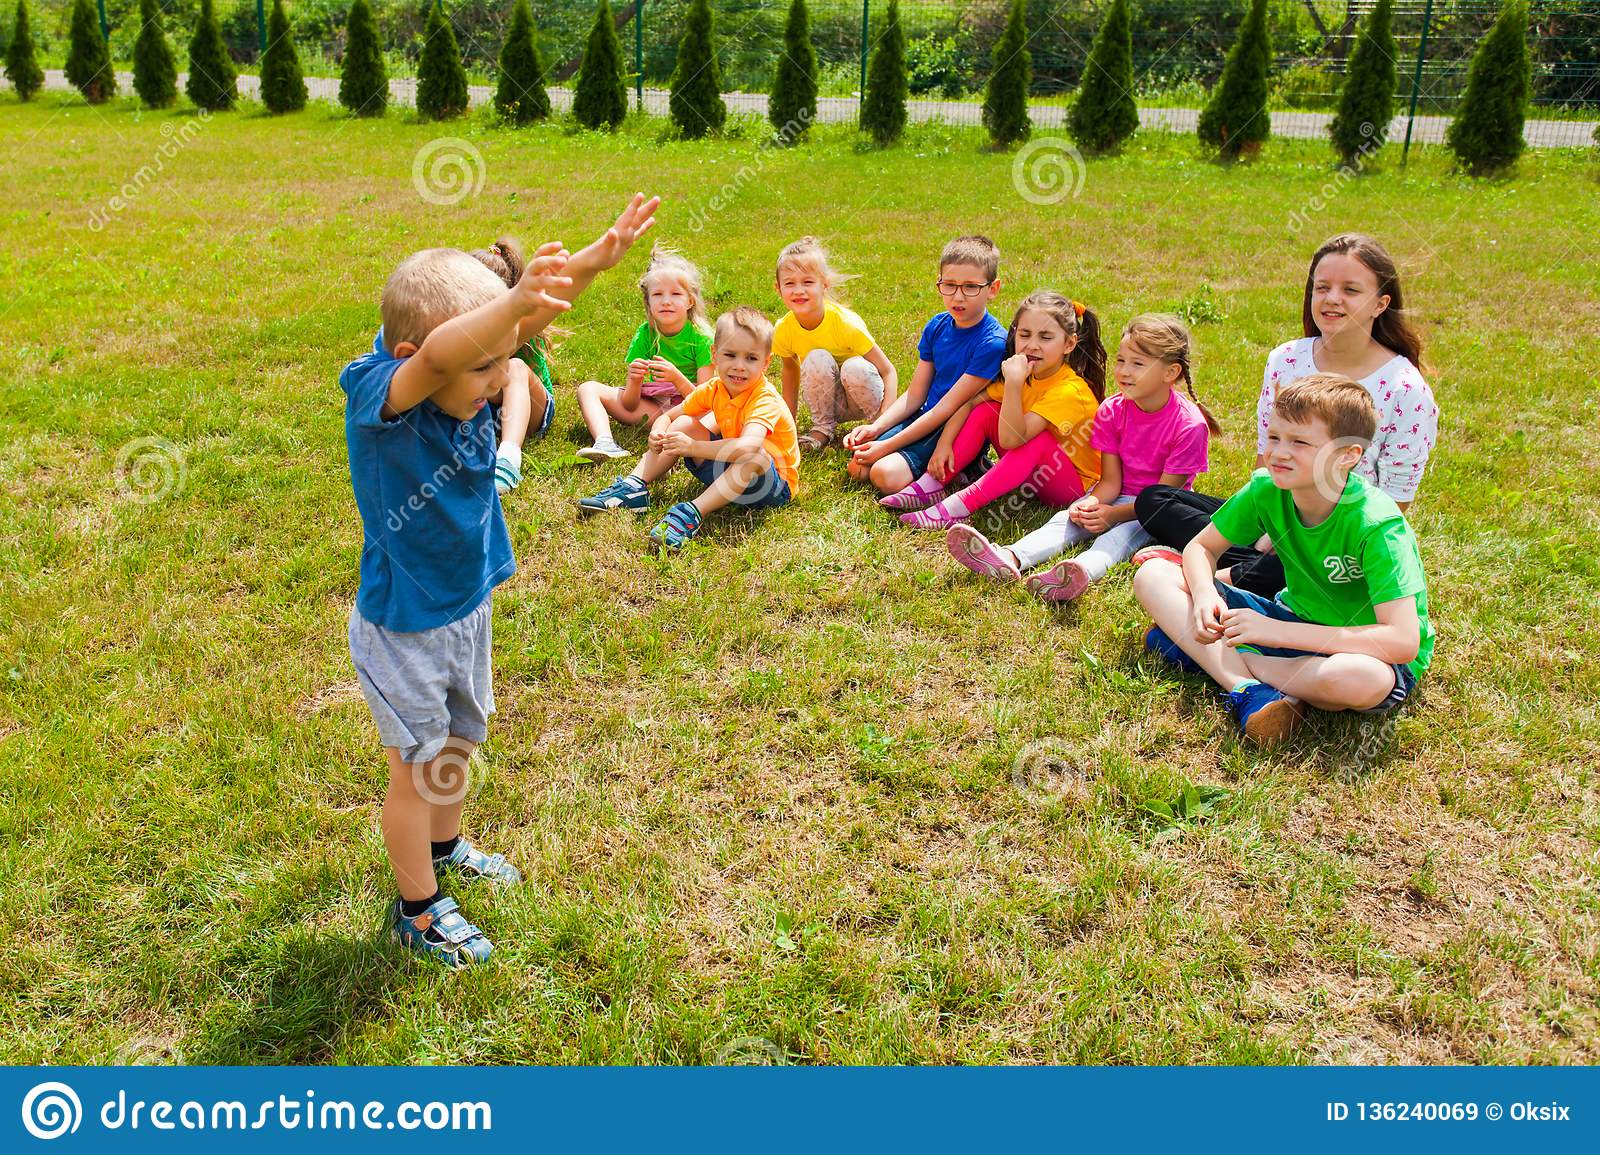 Lovely boy standing in front of group of kids